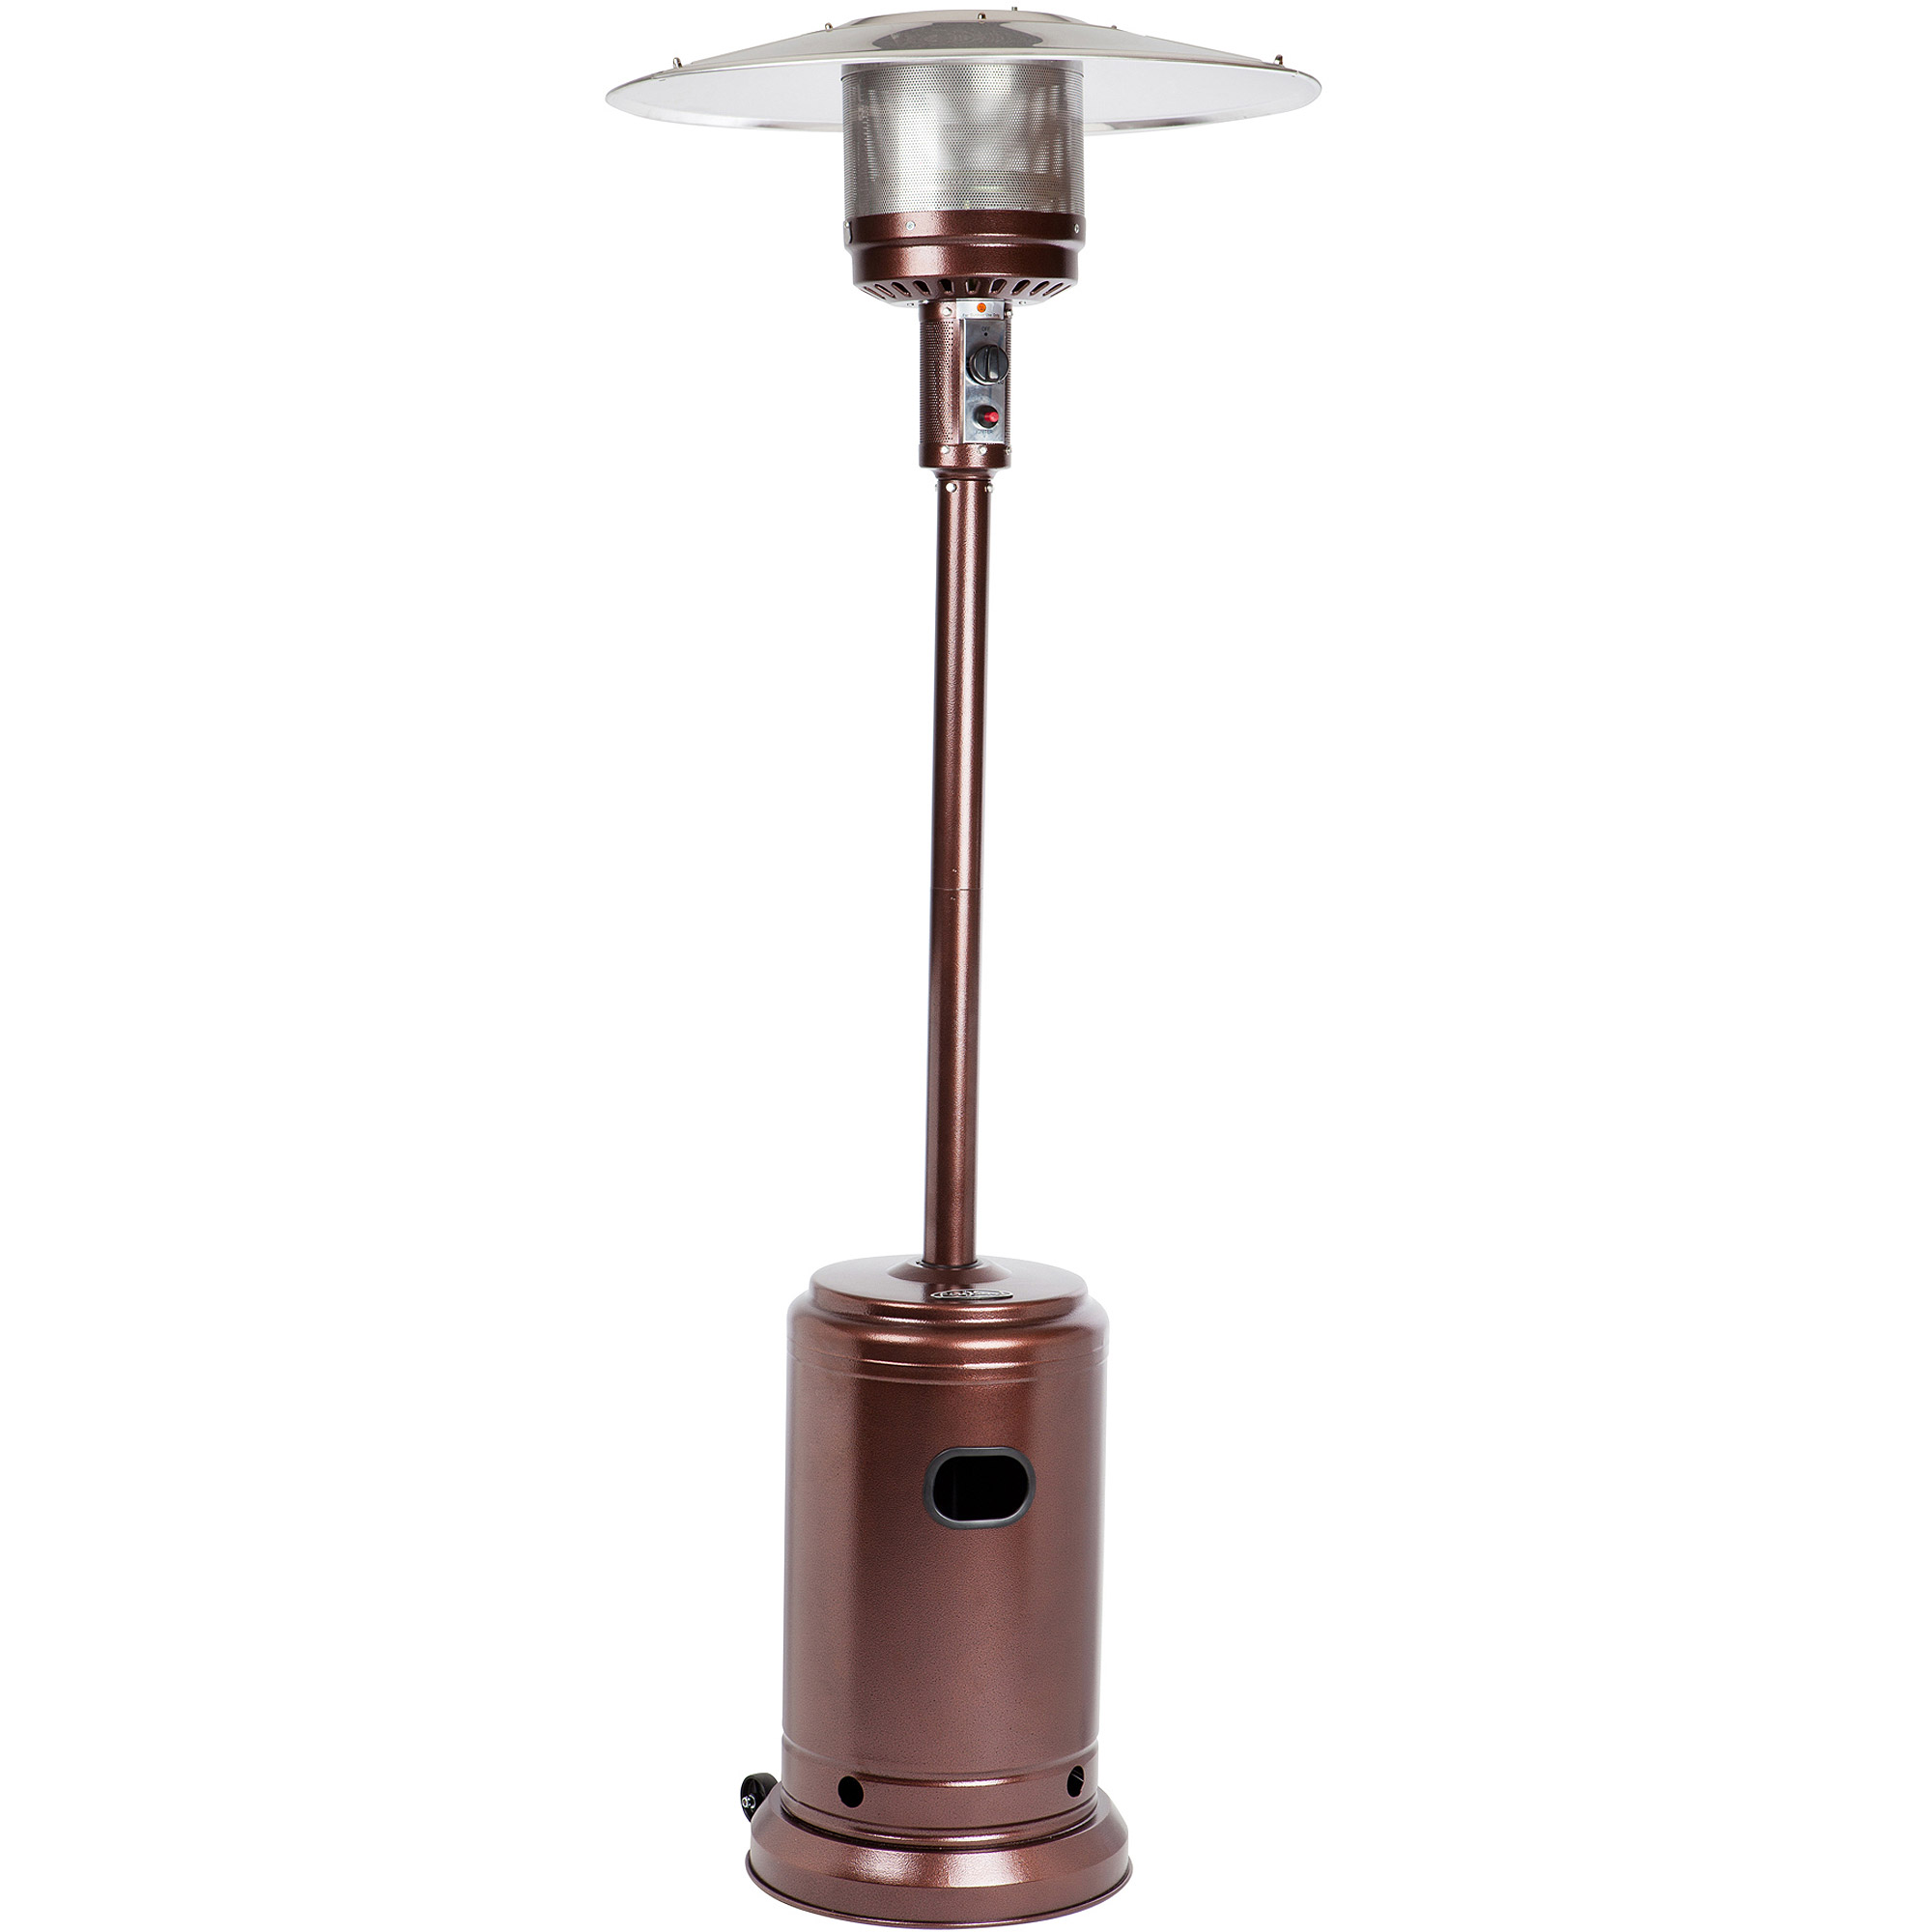 Fire Sense Hammer Tone Bronze Commercial Patio Heater Walmart Com